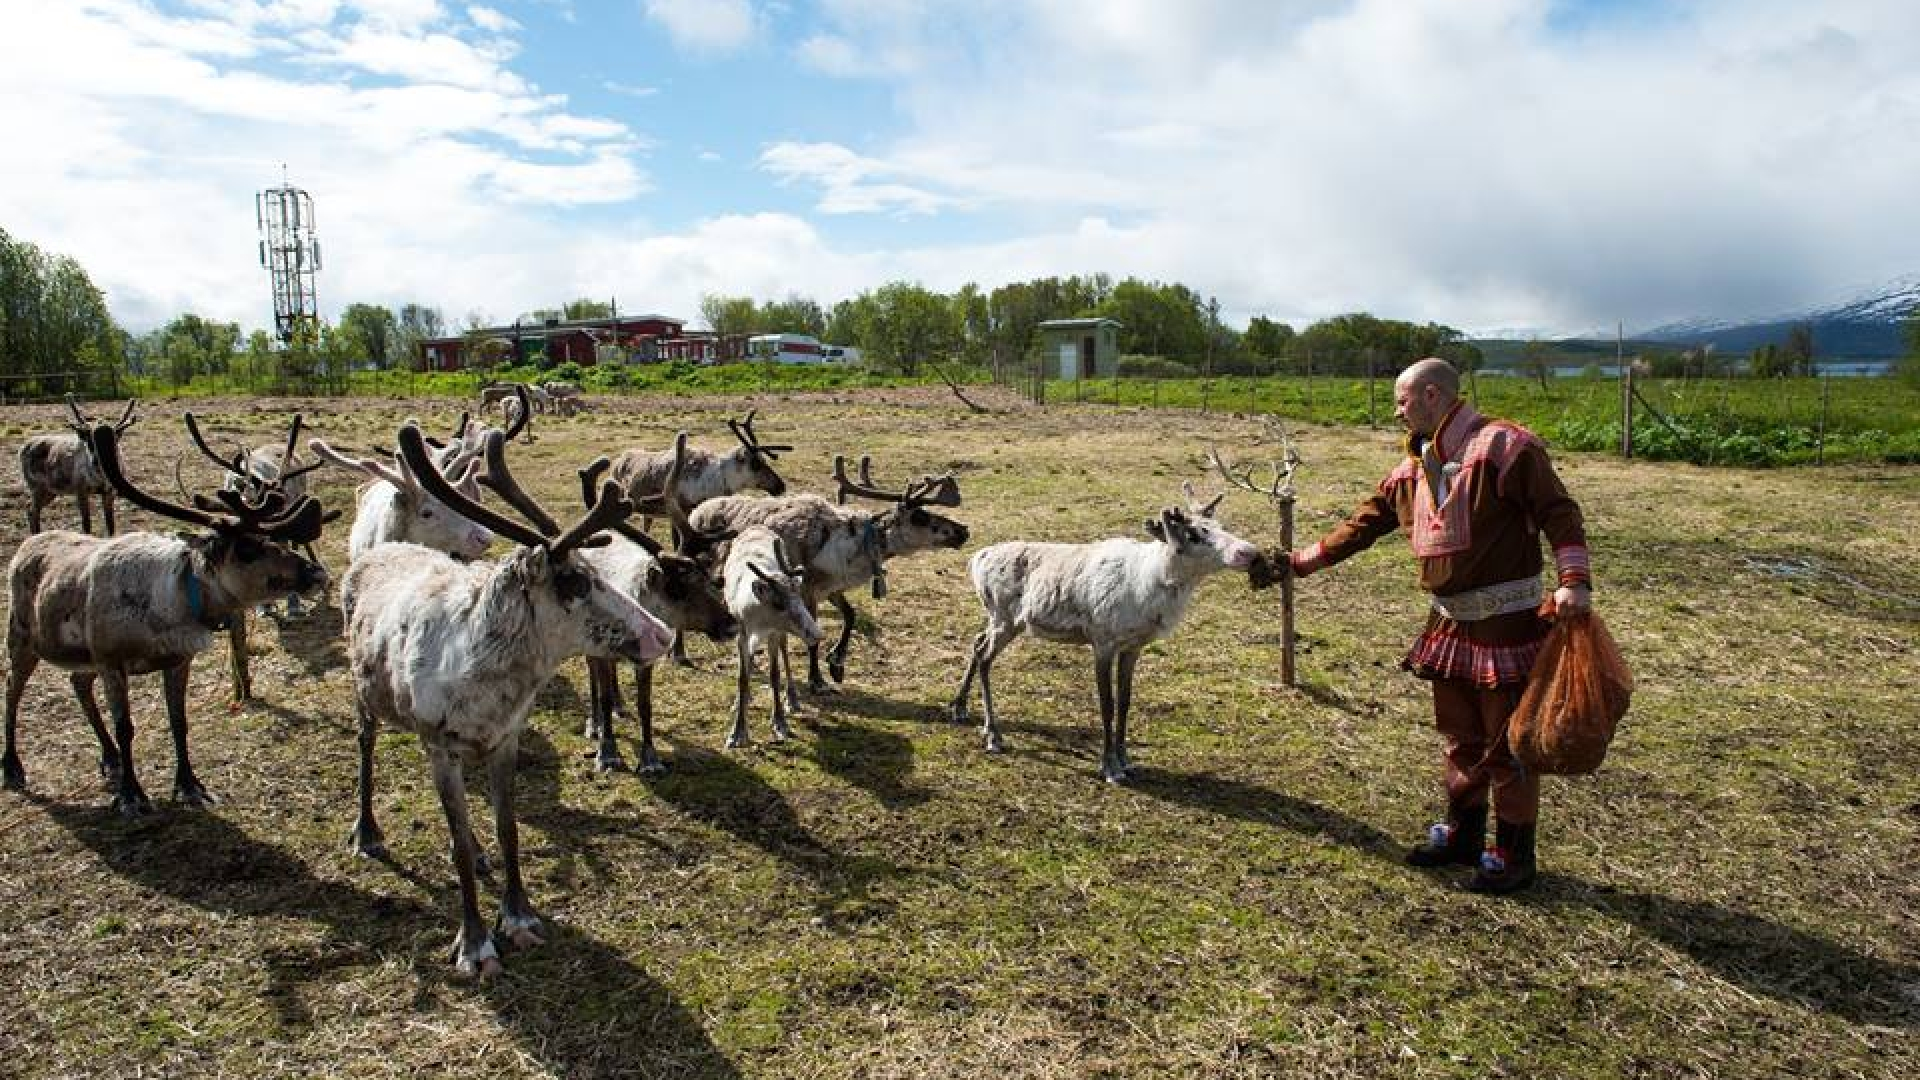 a sami man giving food to his reindeeer